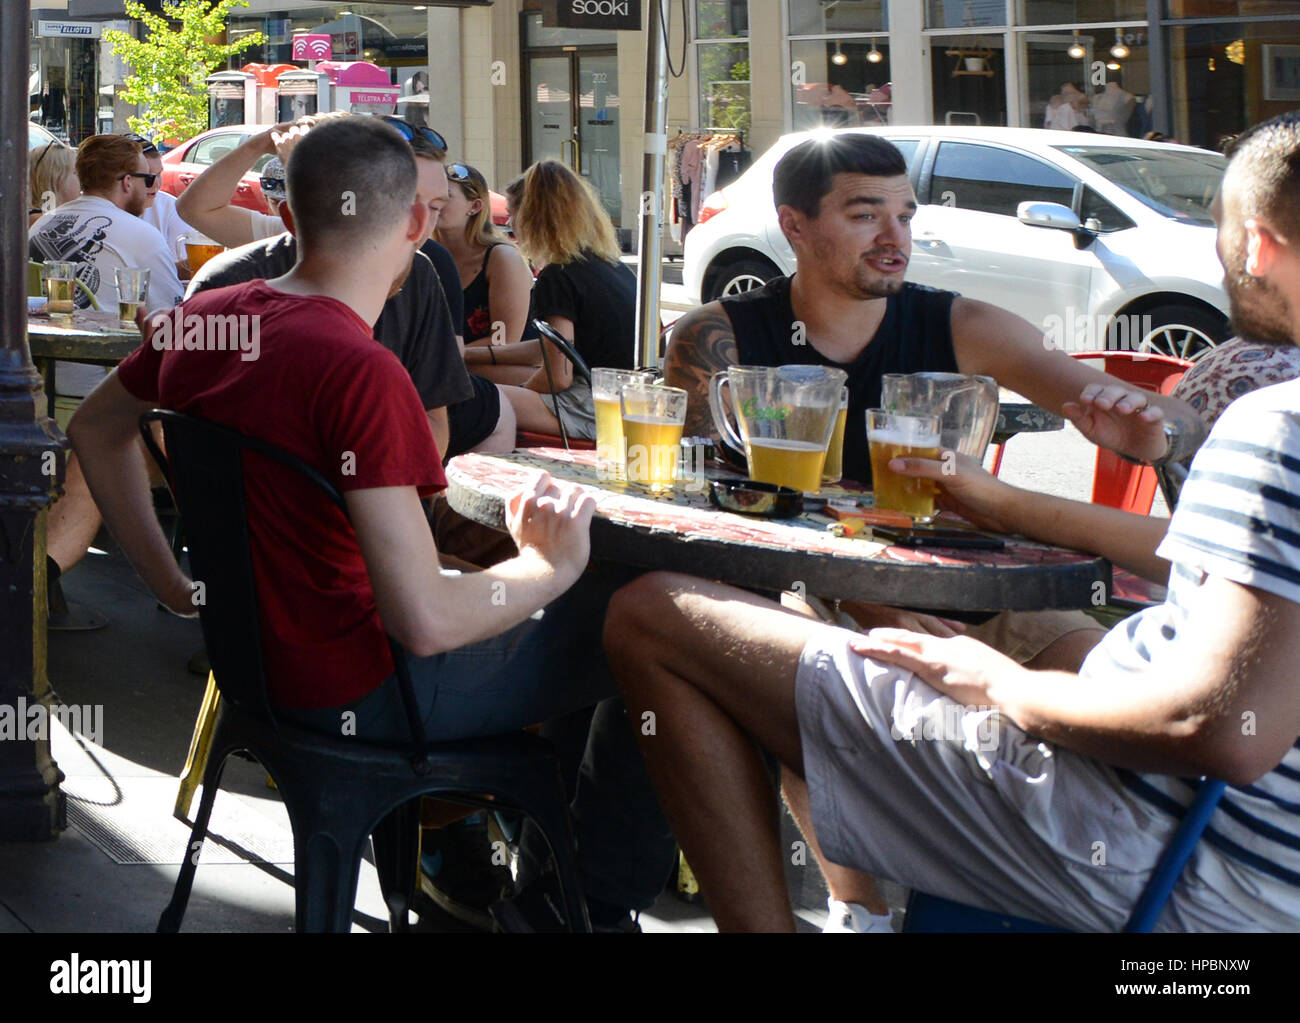 Young Aussie men enjoy their draft beer in a popular bar on Rundle street in Adelaide. - Stock Image